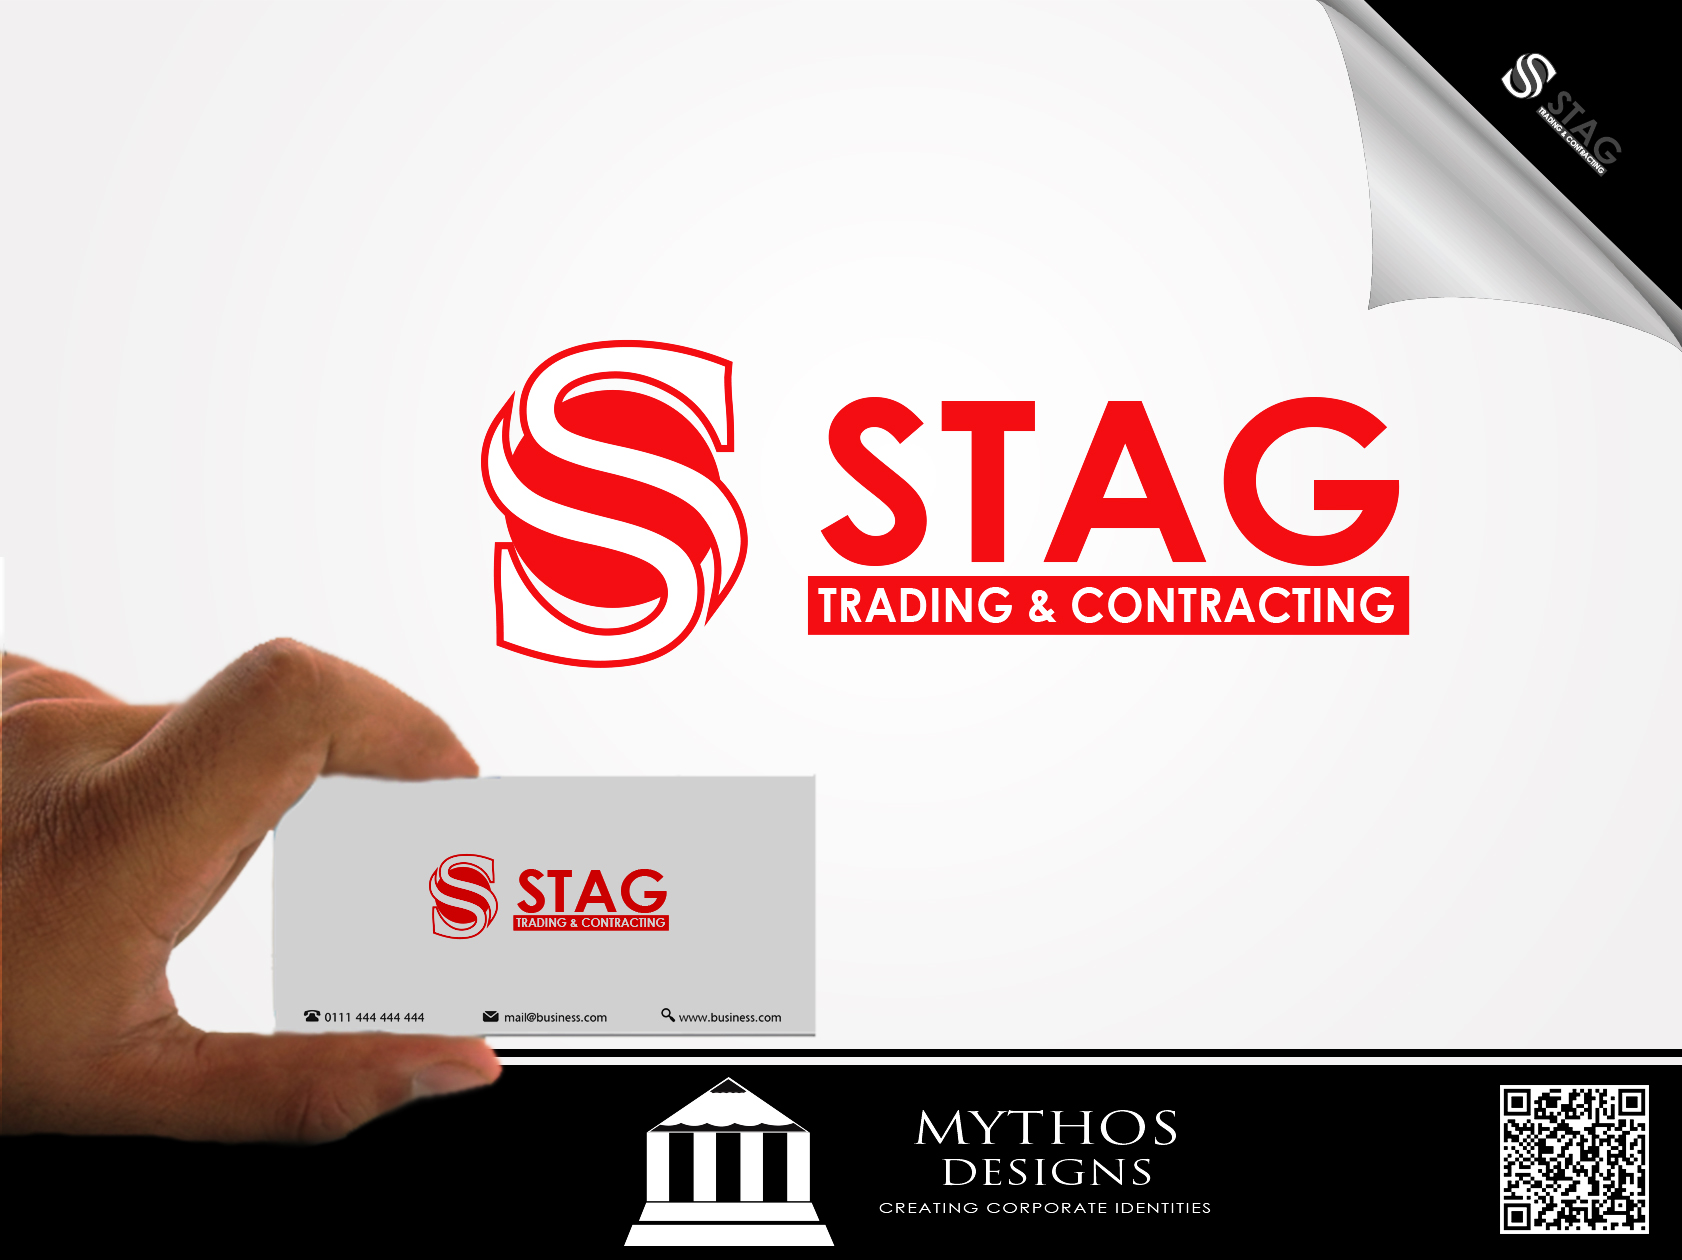 Logo Design by Mythos Designs - Entry No. 317 in the Logo Design Contest Captivating Logo Design for STAG Trading & Contracting.